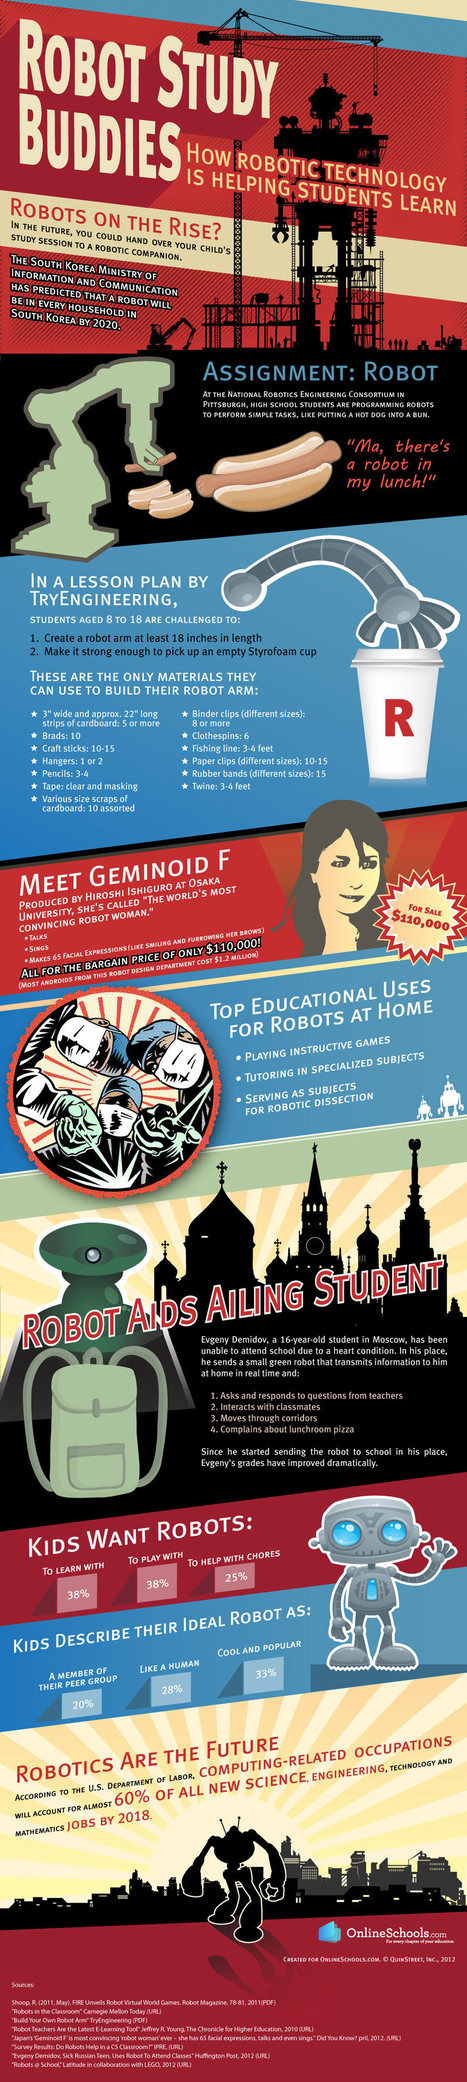 INFOGRAPHIC: Robot Study Buddies: How Robotic Technology is Helping Students Learn | Online Schools | The Robot Times | Scoop.it